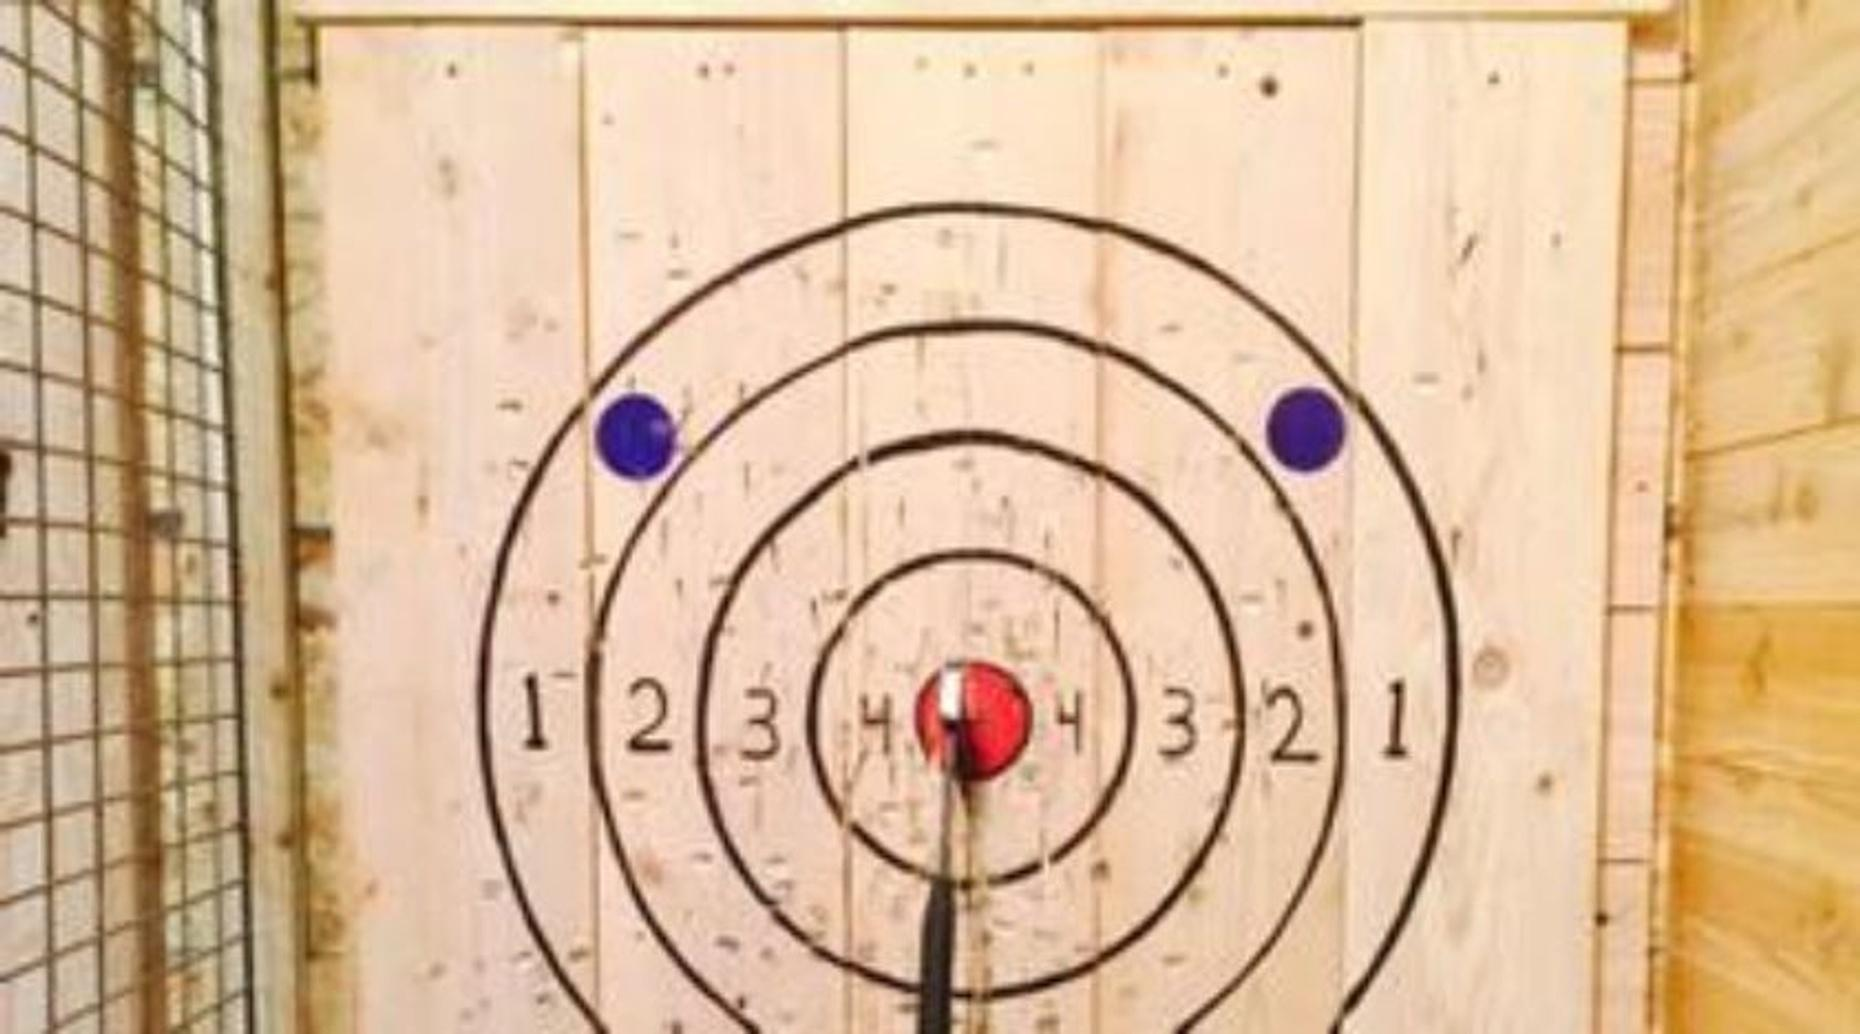 Downtown Axe Throwing Experience in Sioux Falls